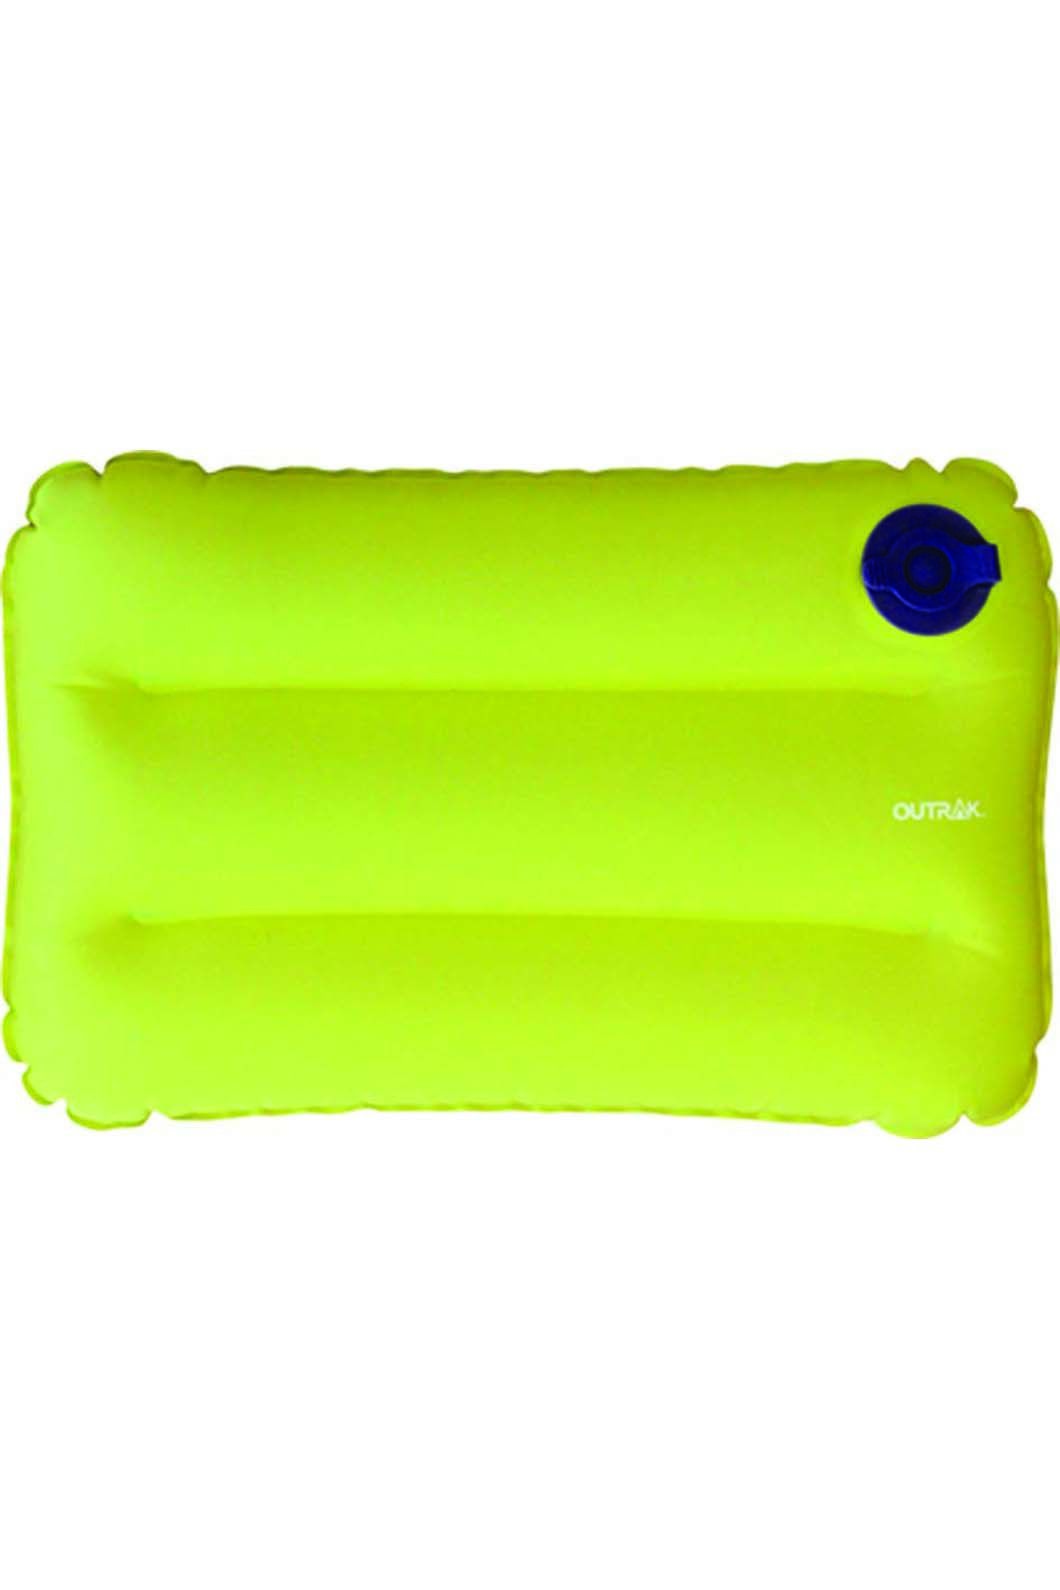 Outrak Inflatable Pillow, None, hi-res